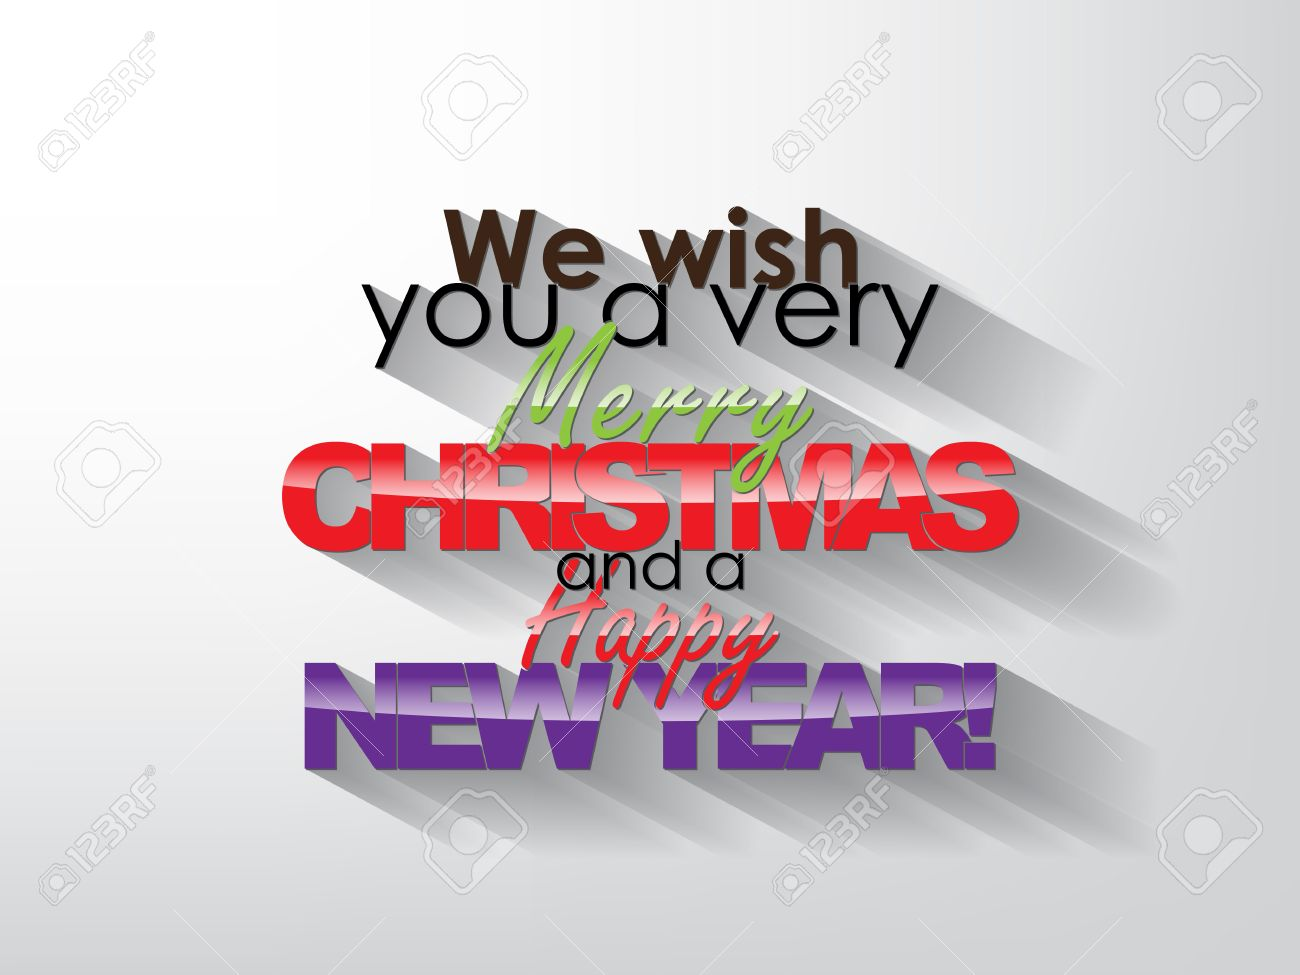 vector we wish you a very merry christmas and a happy new year typography background christmas poster